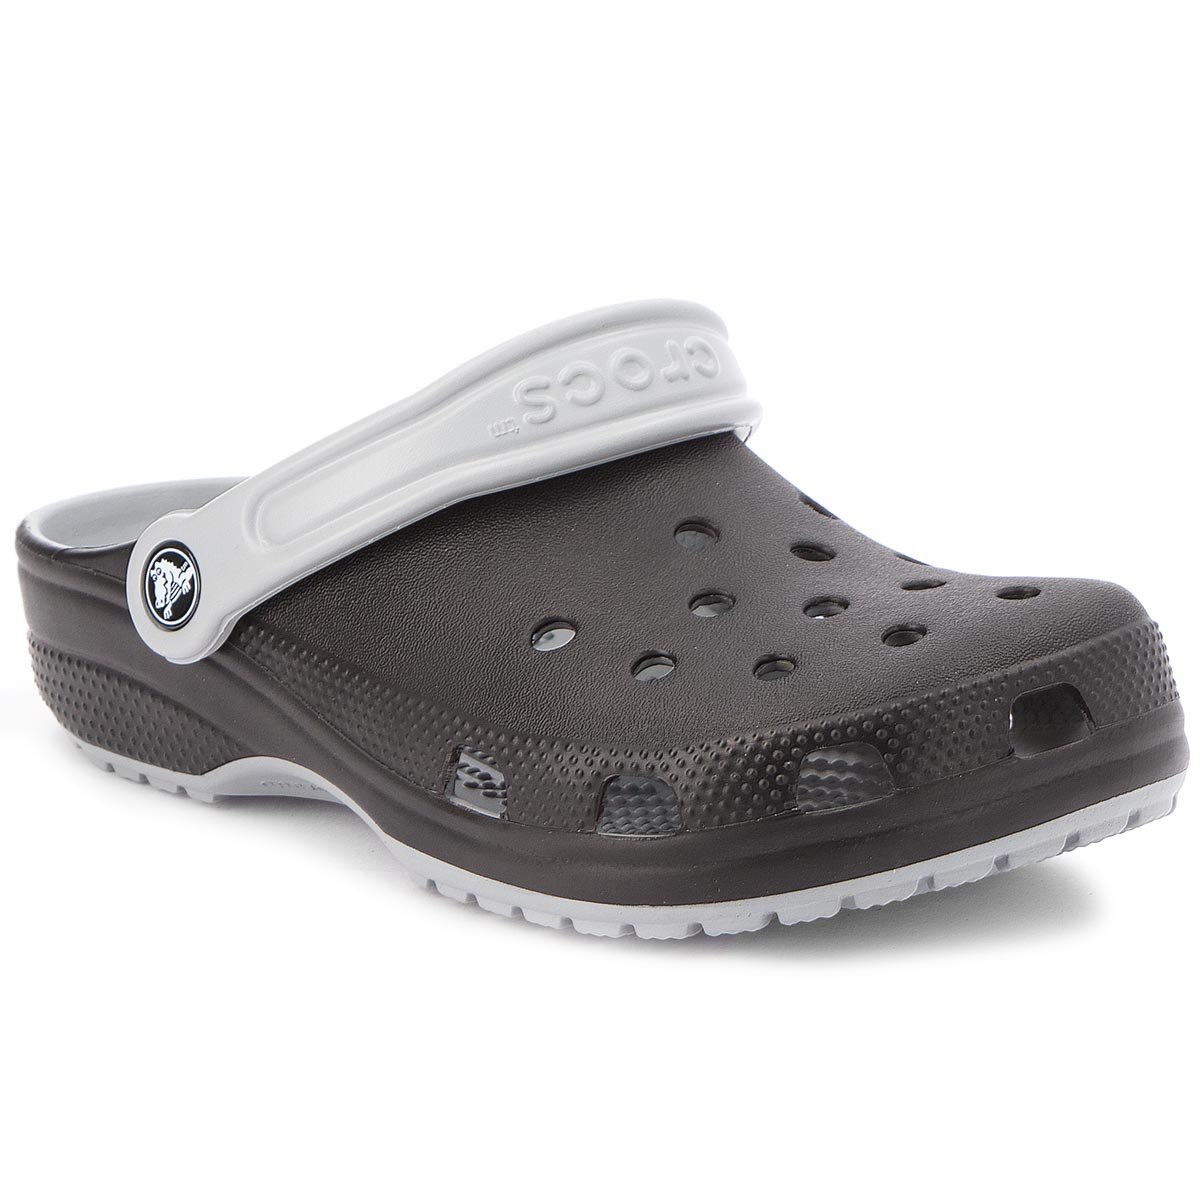 Klapki CROCS - Classic Carbon Graphic Clg 205108 Light Grey